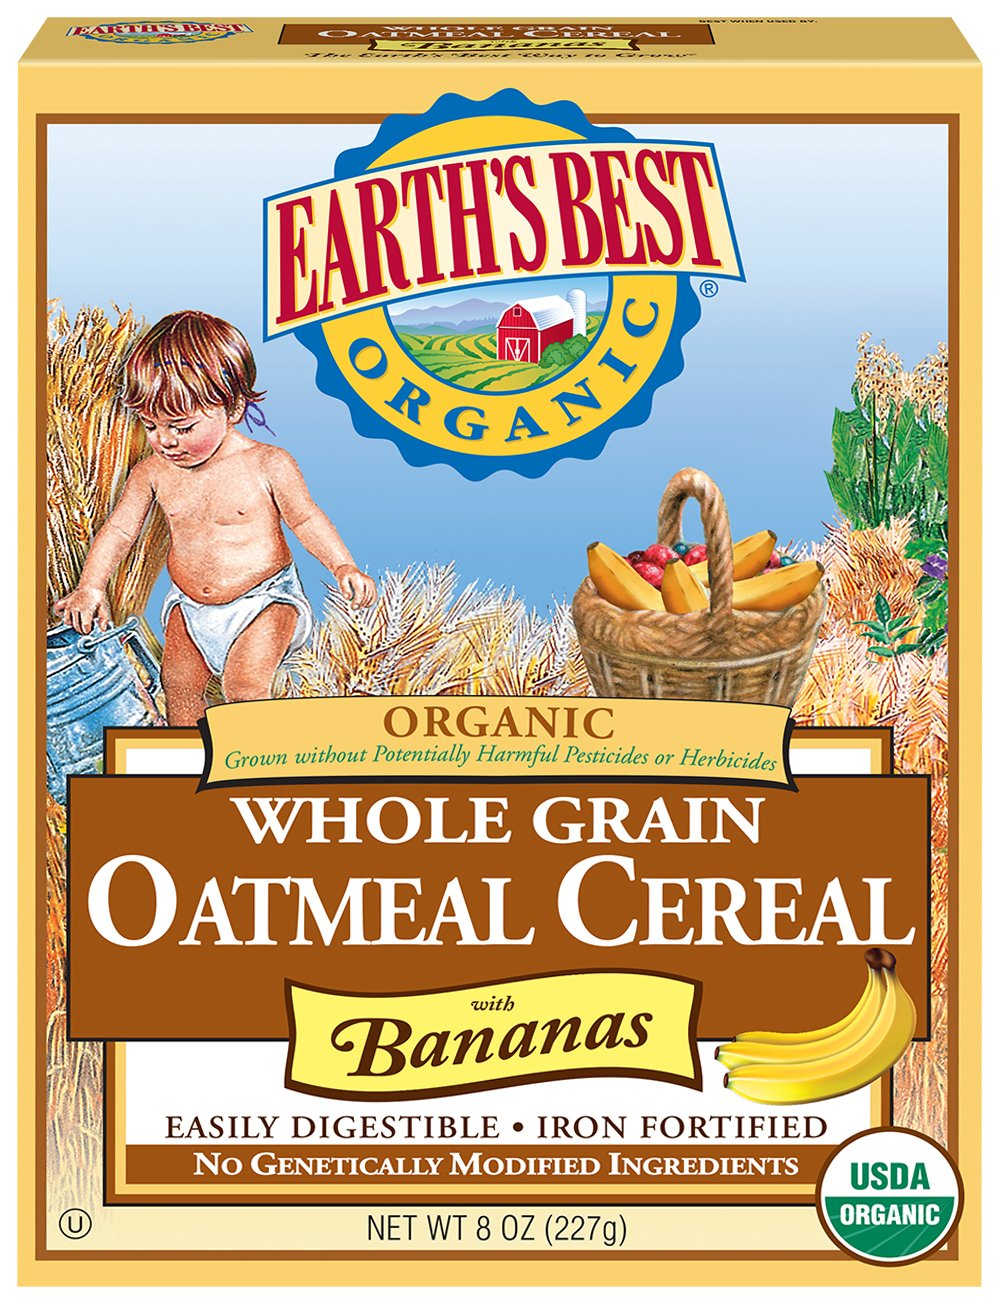 Earth's Best Organic Infant Cereal, Whole Grain Oatmeal with Bananas, 8 Oz - Packaging May Vary by Earth's Best (Image #1)